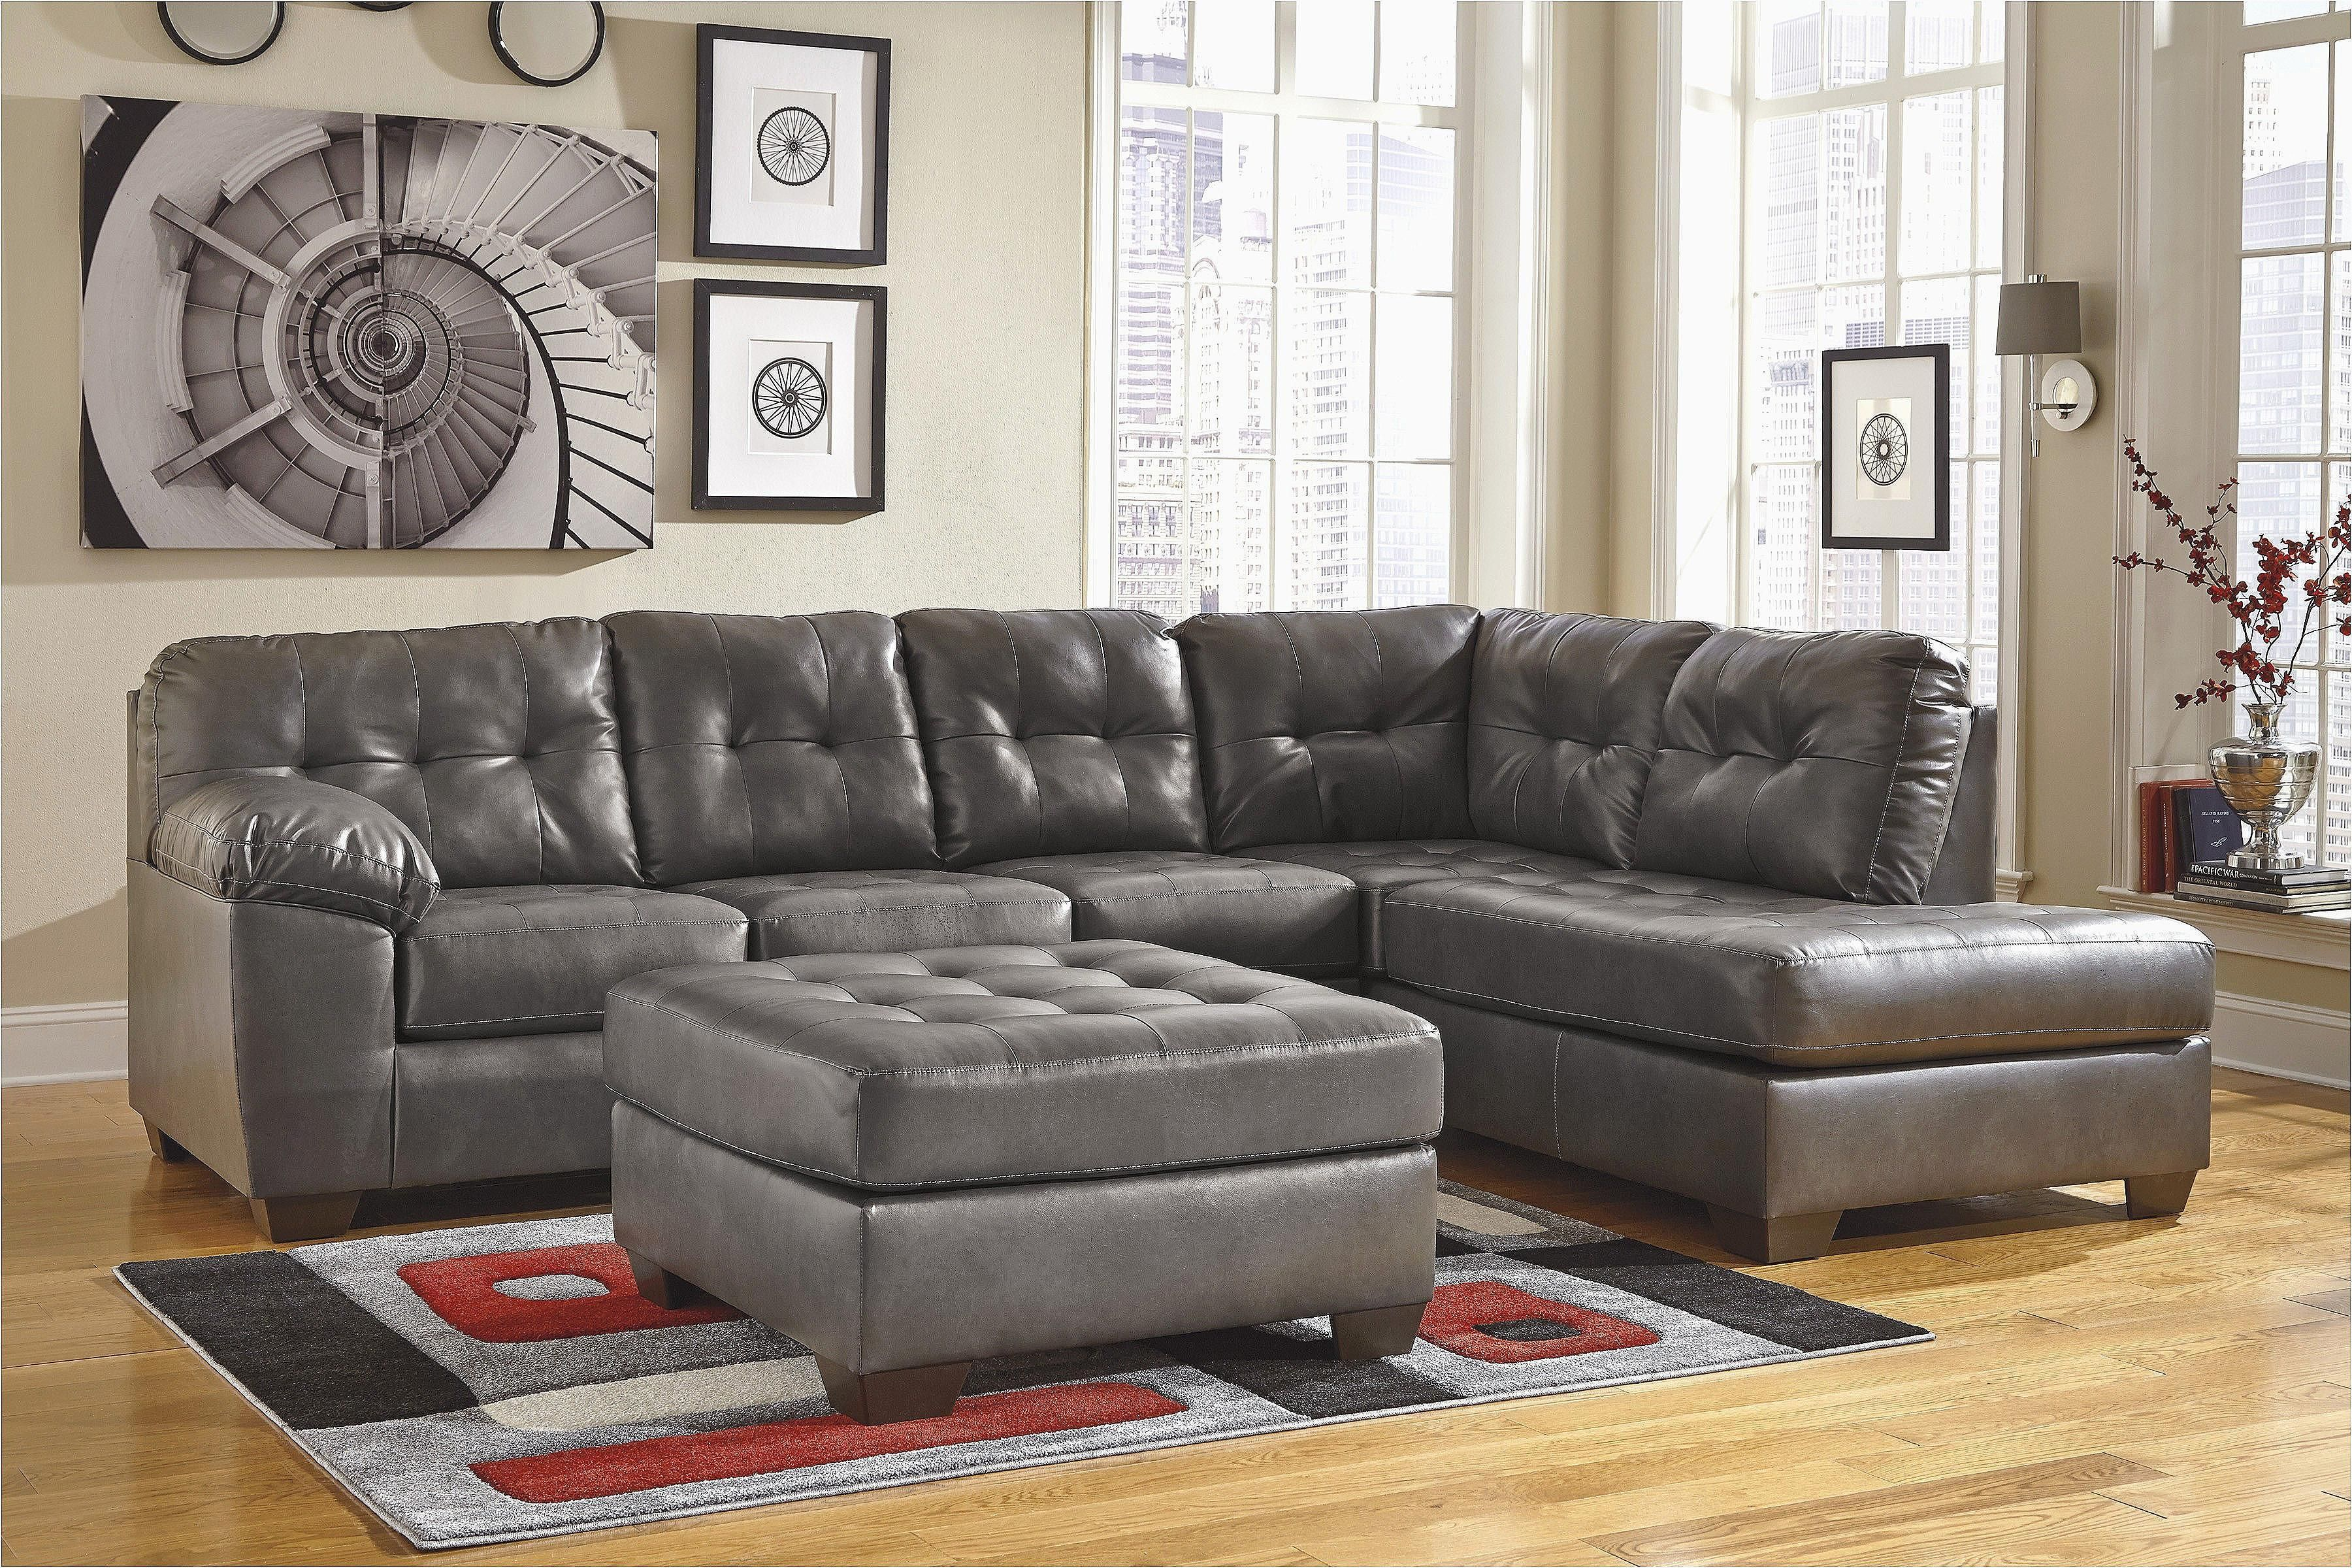 Inspirational Living Room Ideas with Red Leather sofa ...